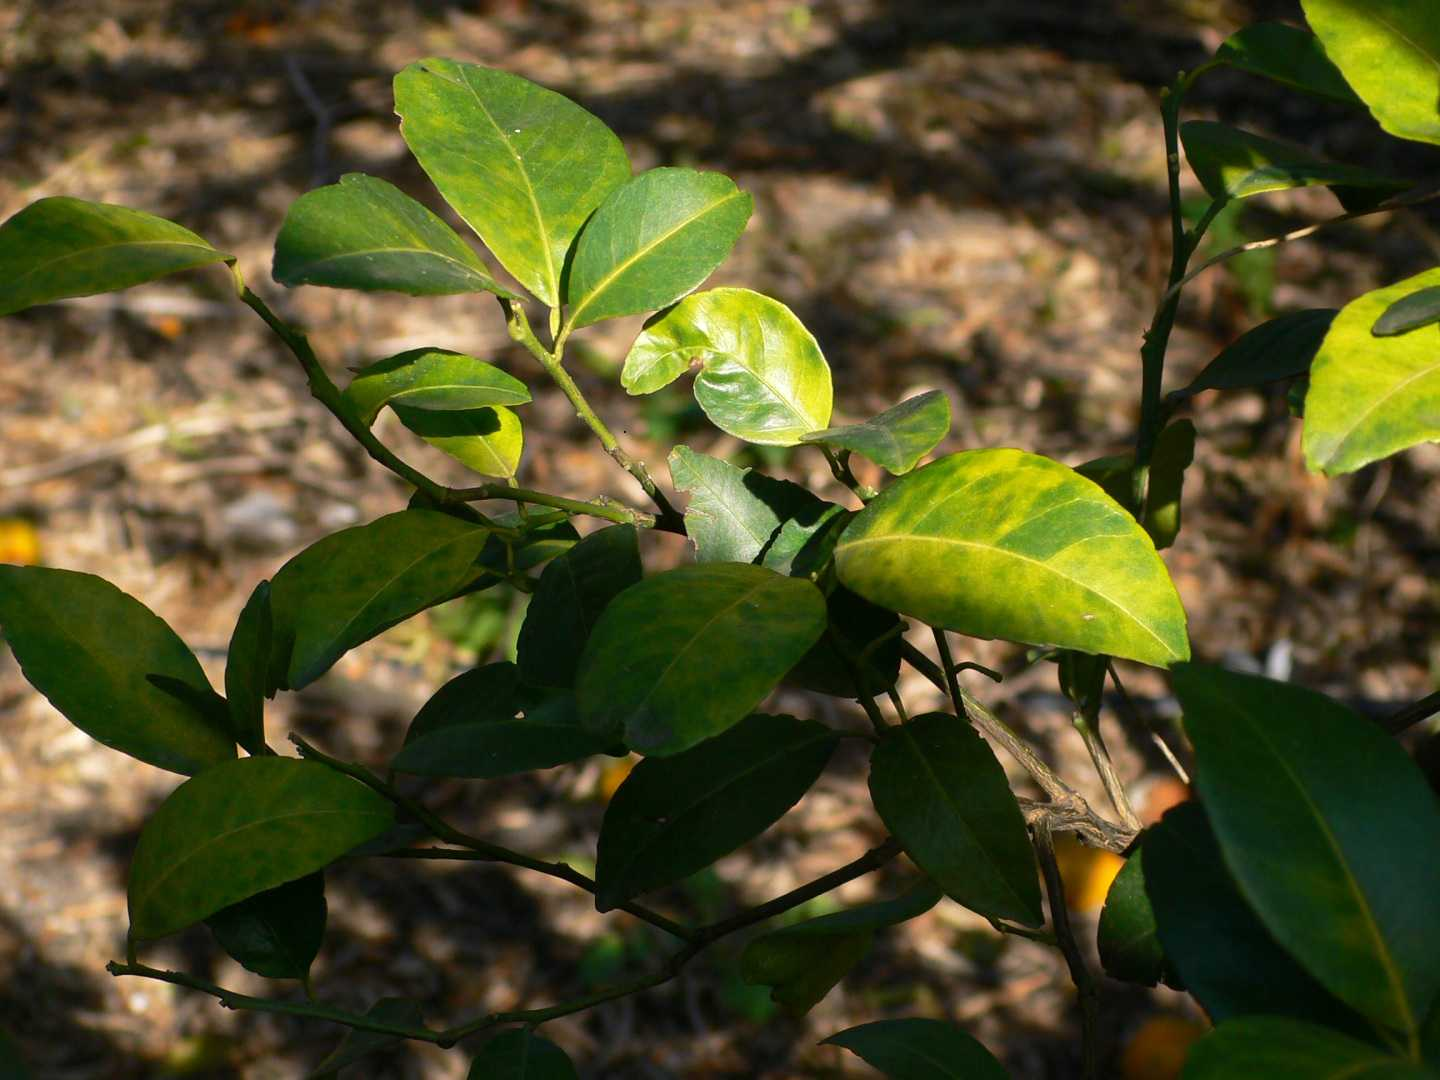 Report: Single Big Breakthrough Unlikely for Citrus Greening Cure